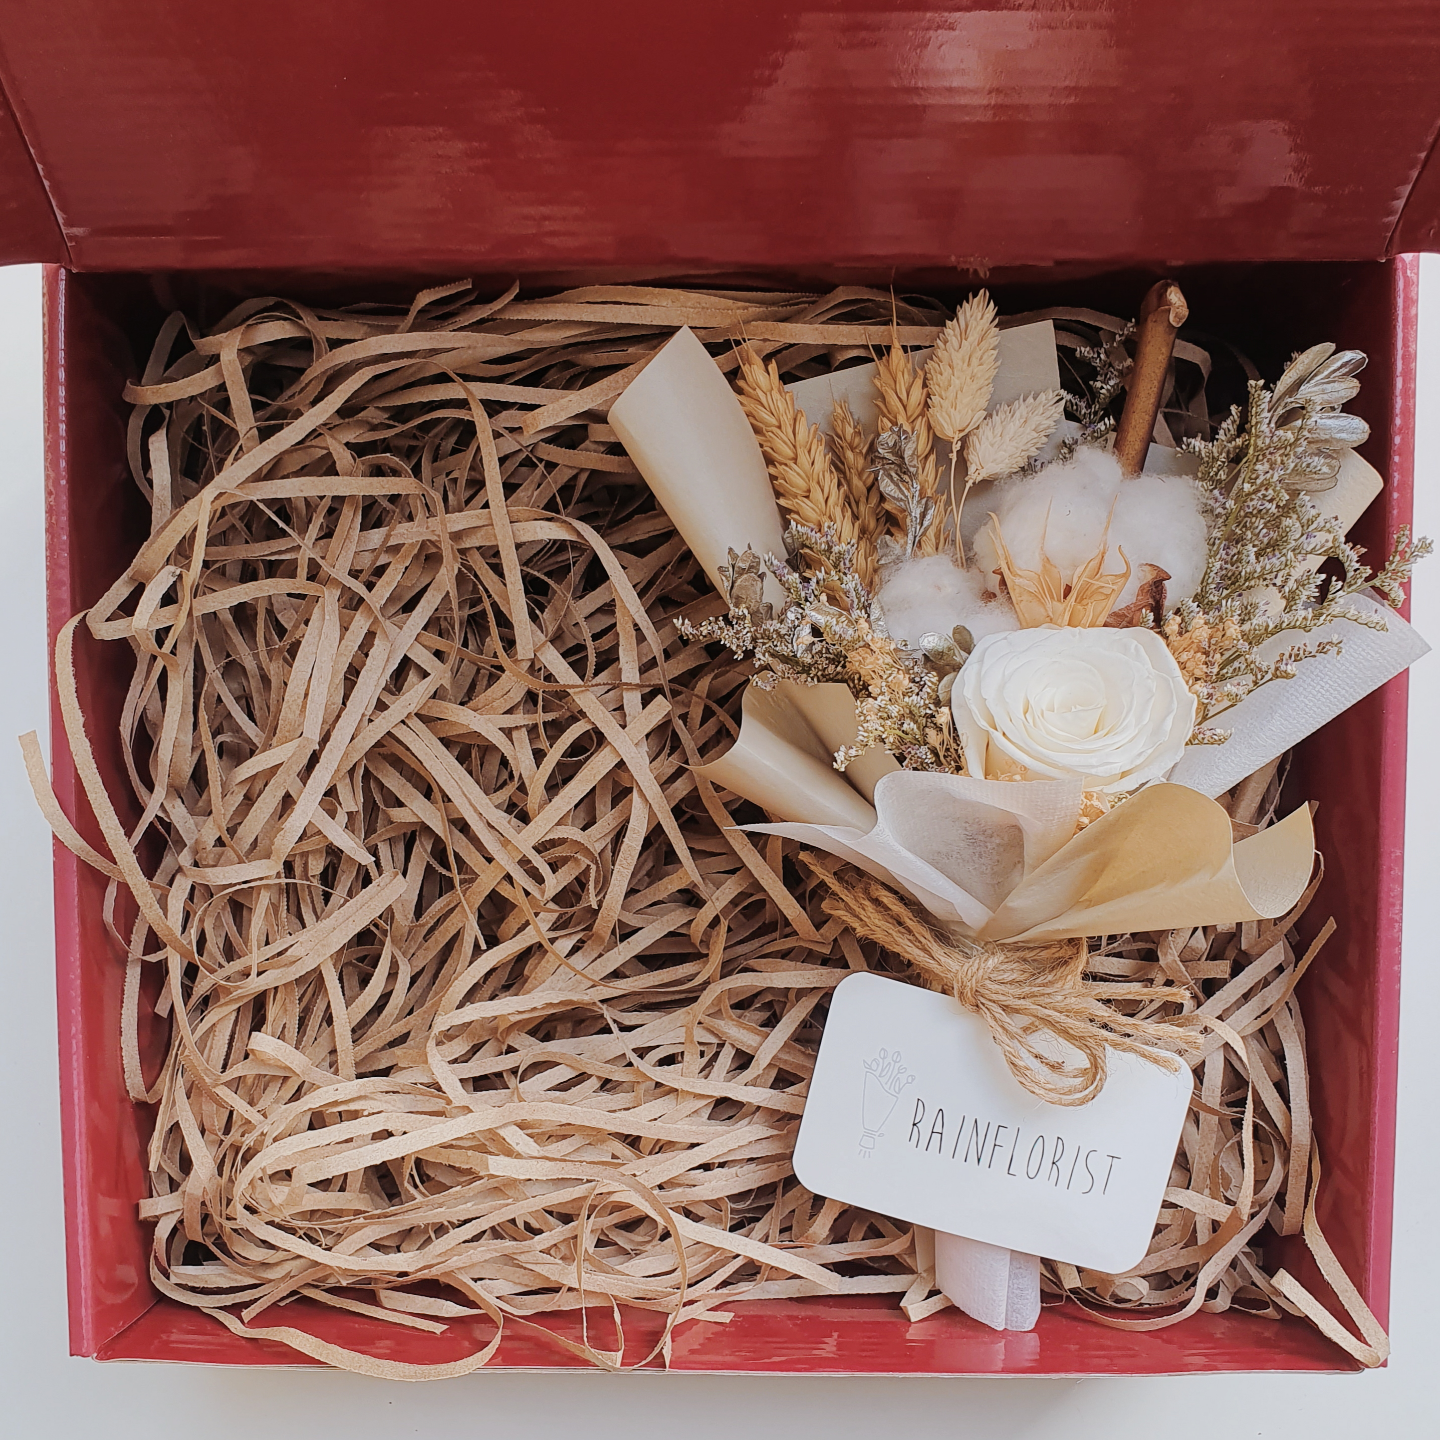 Red gift box filled with brown shredded paper. On the right is a bouquet of dried flowers in coffee brown.